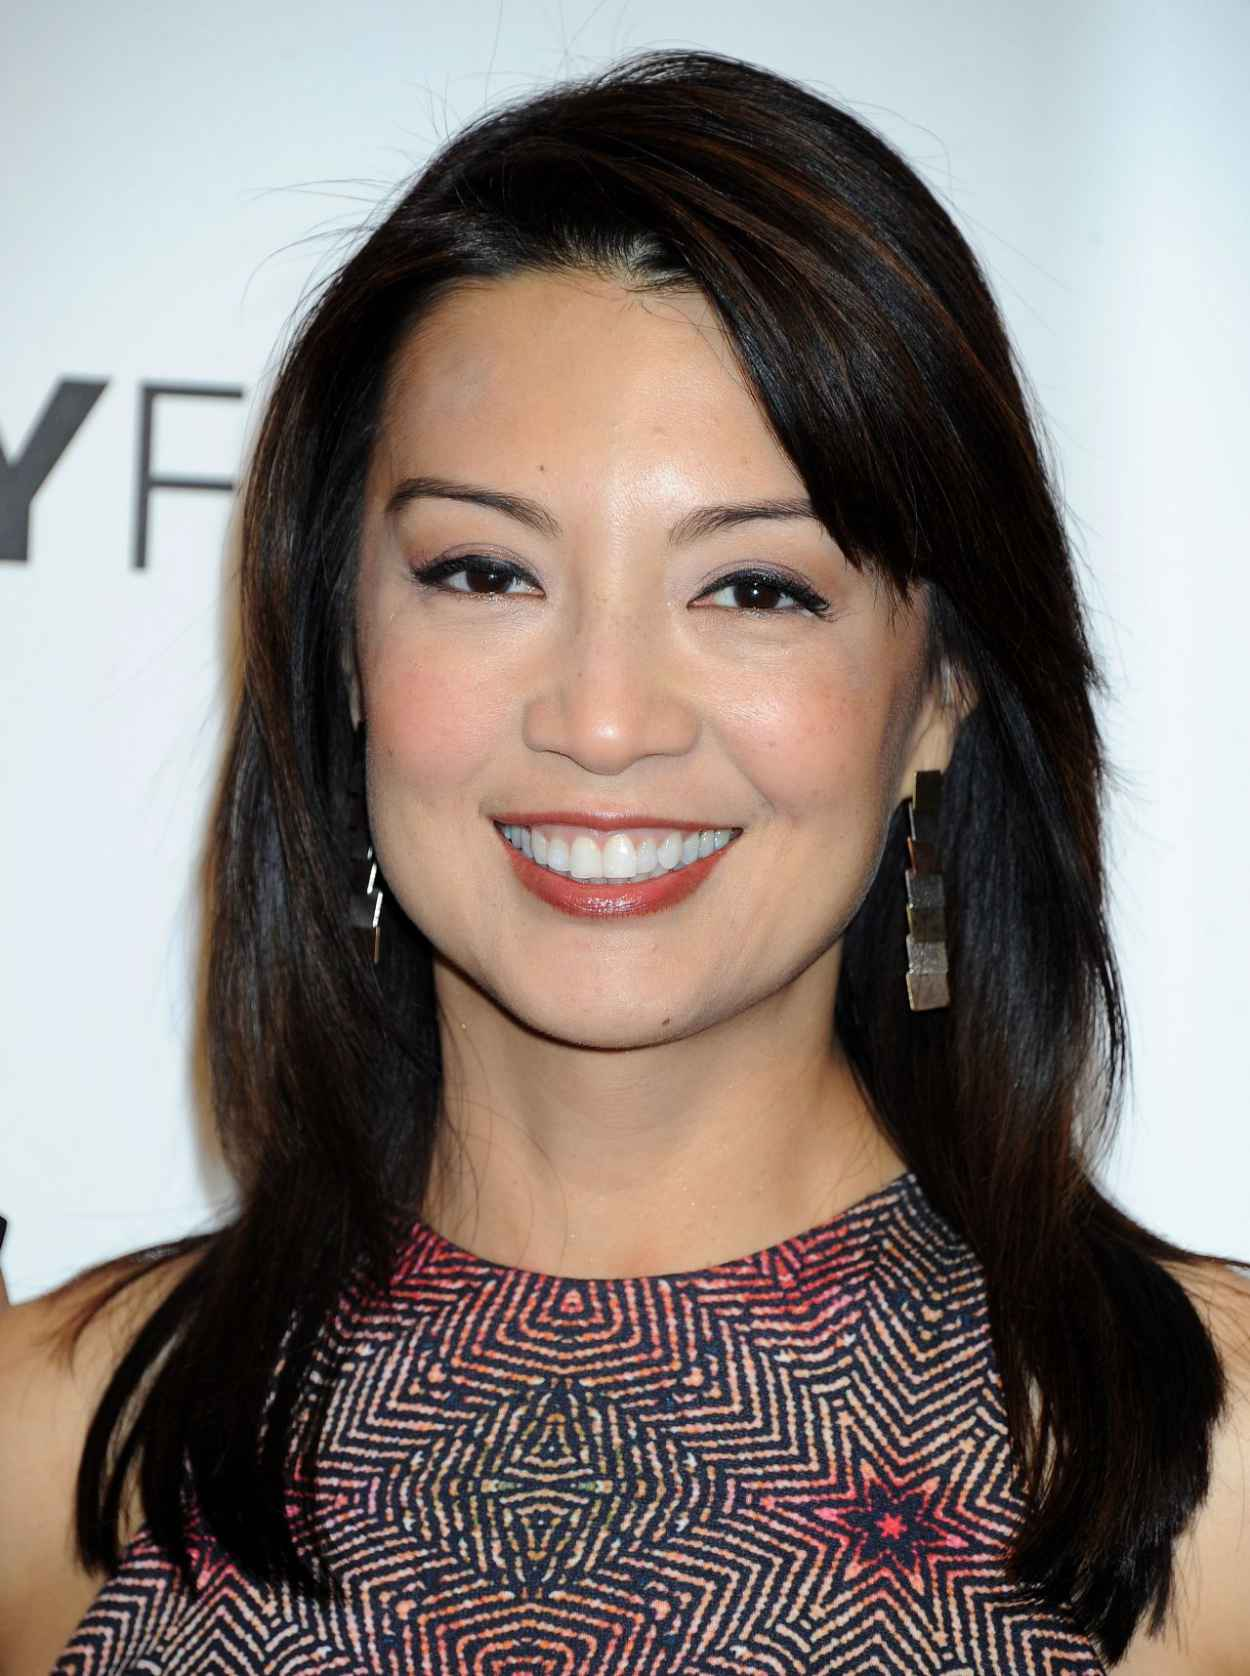 Ming-Na Wen - PaleyFest An Evening With -The Agents of Shield- - March 2015-1